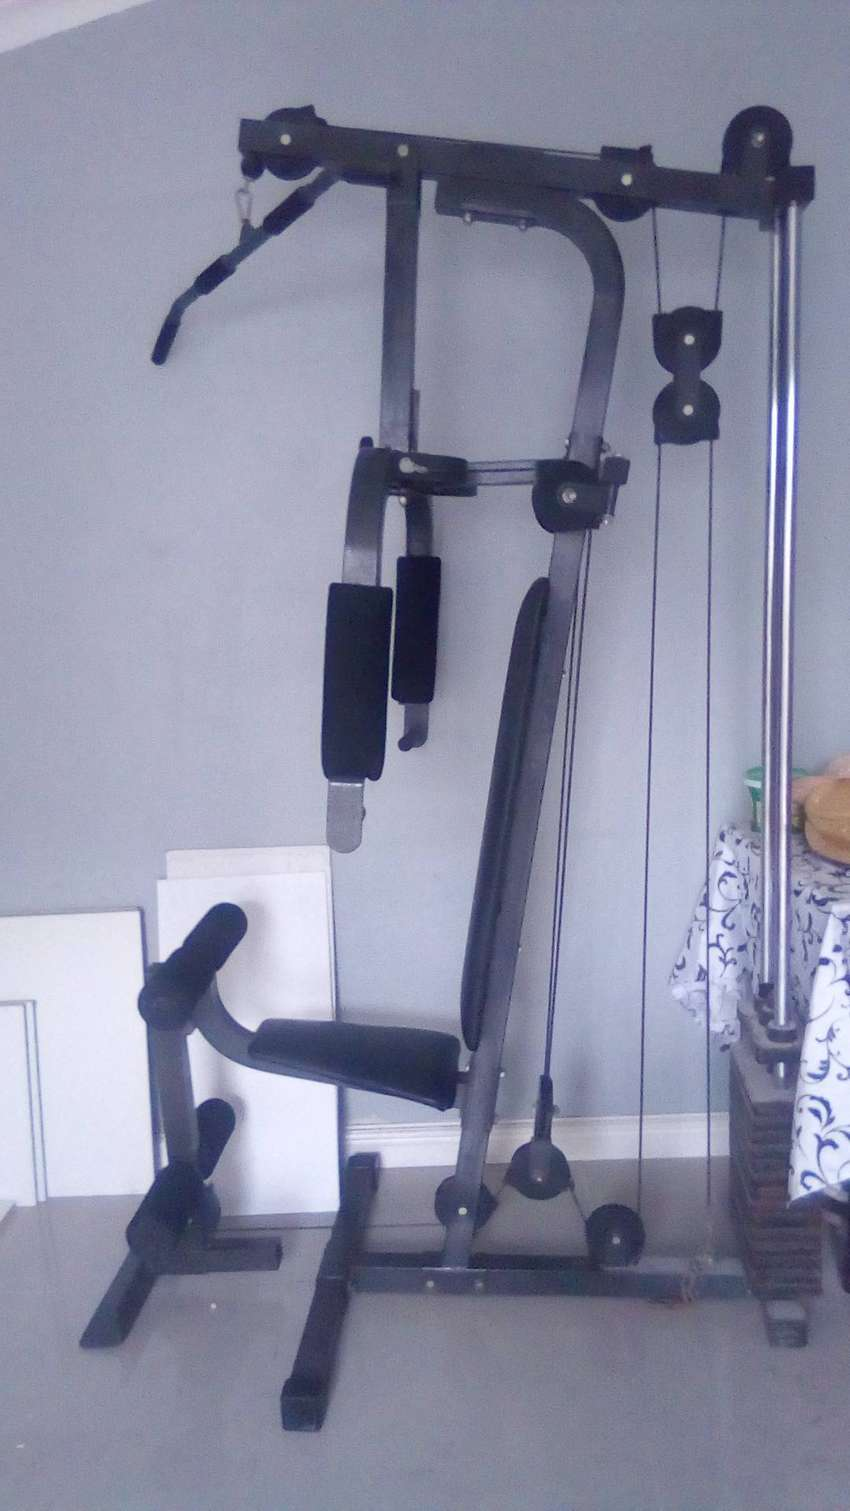 99bbe88286ba4 Gym equipment for sale - Gym & Fitness - 1059165485